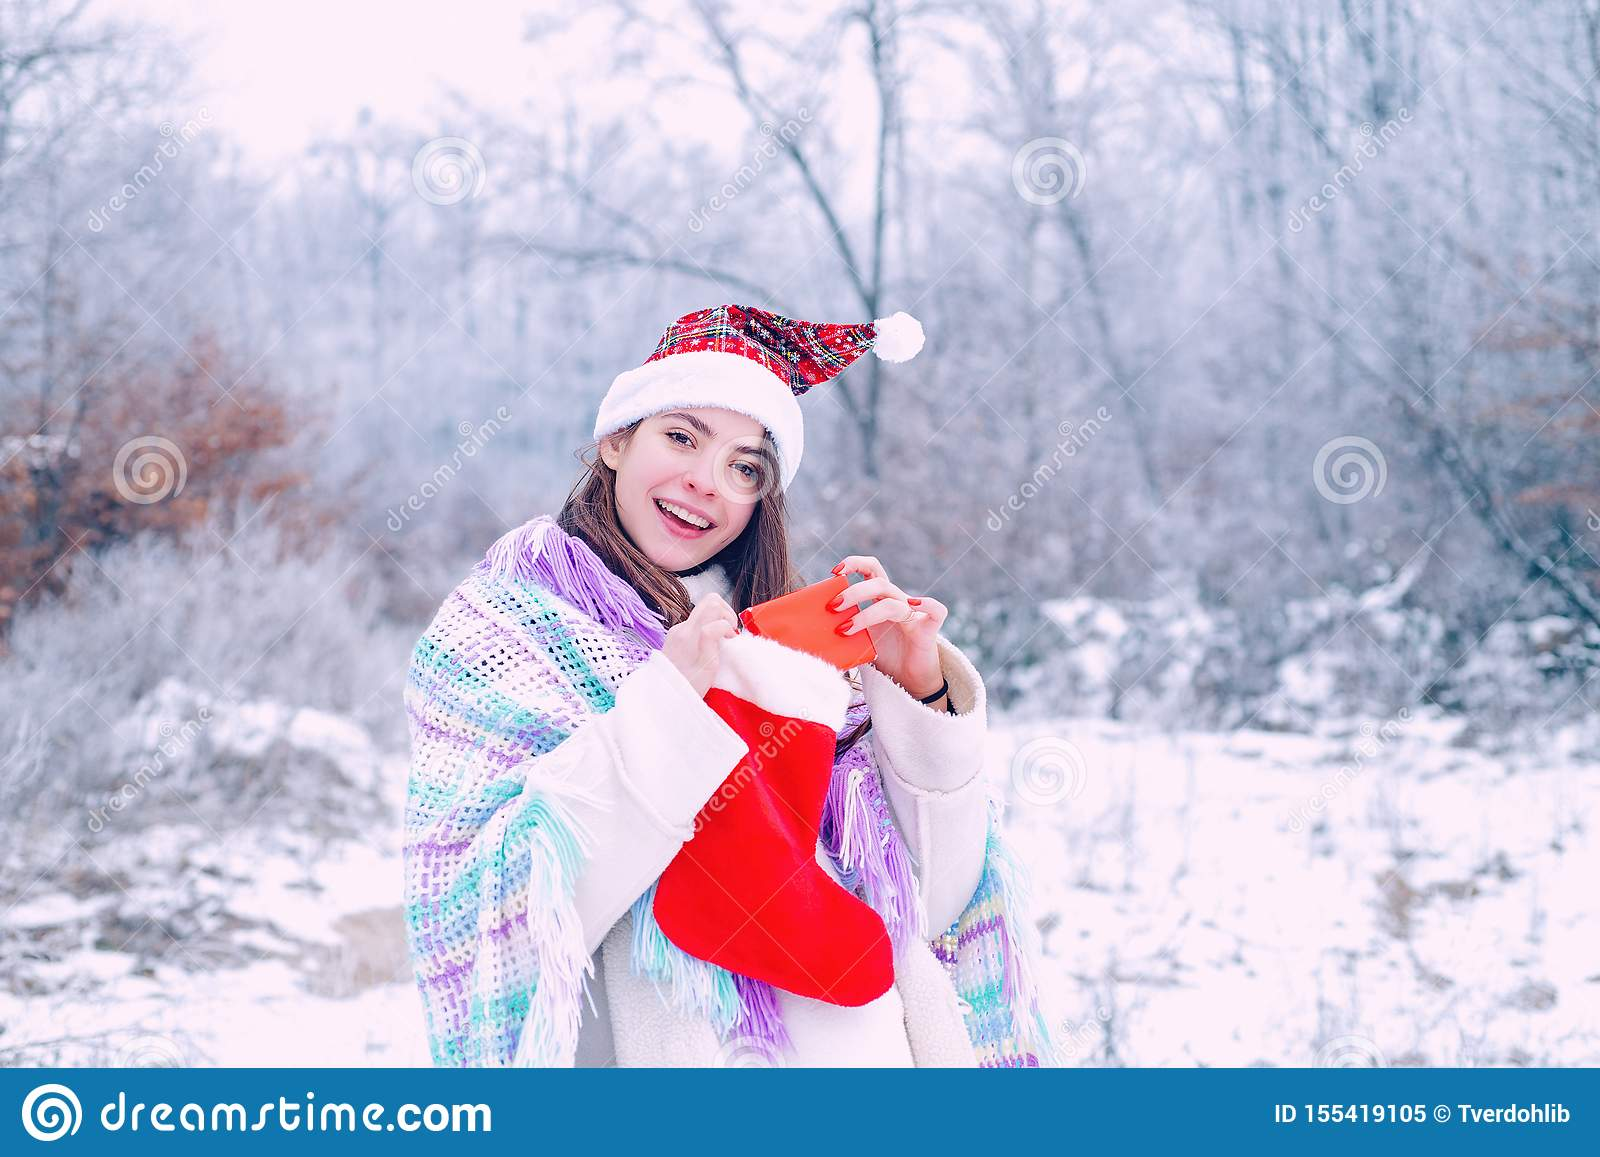 Winter woman. Gift on winter holiday. Girl with present gift in winter park. Suprise in winter day.